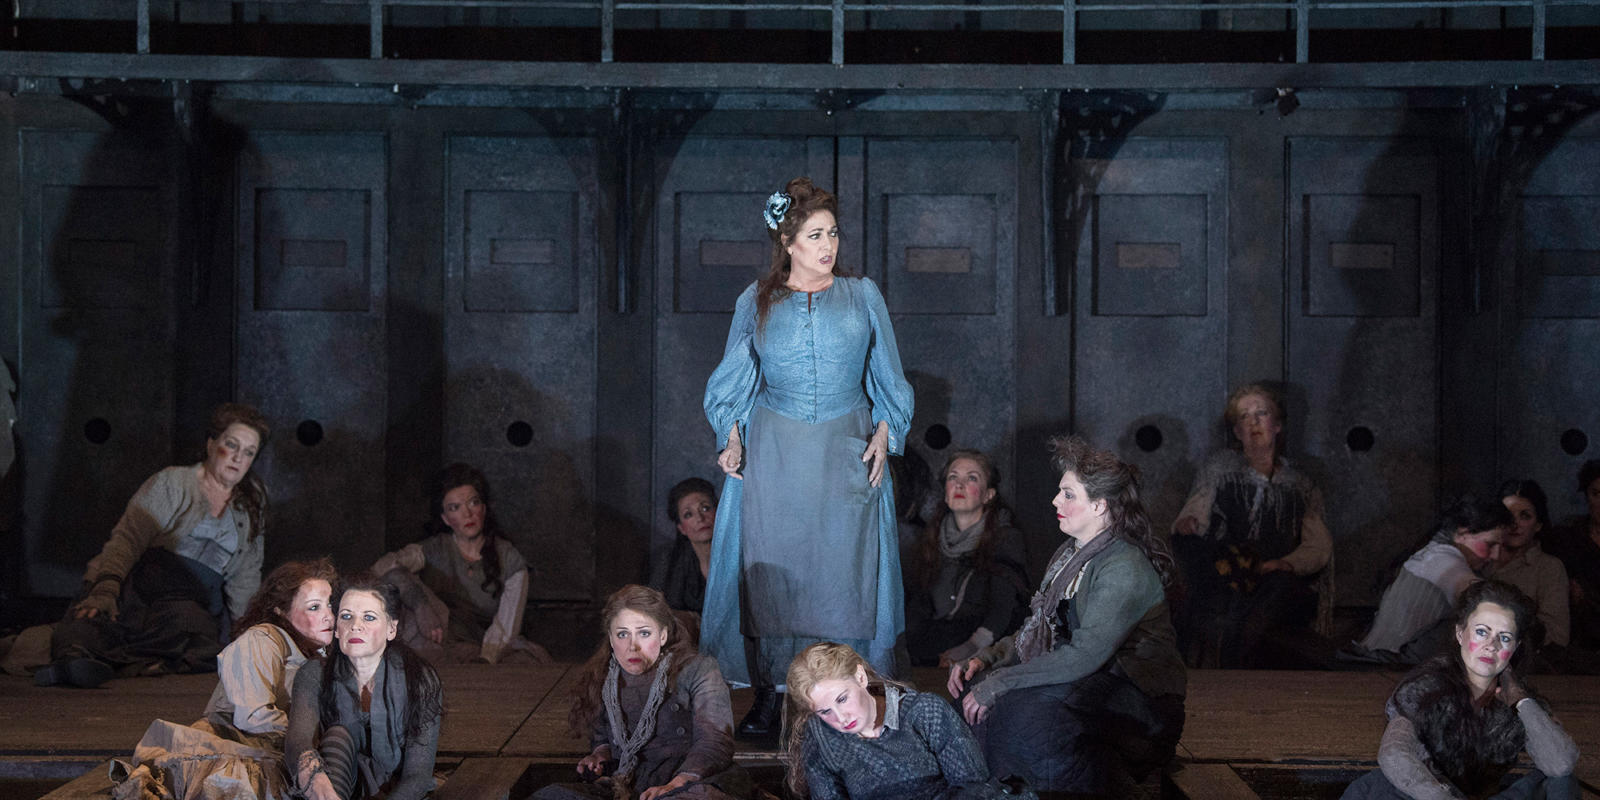 ENO 2018/19 Jack the Ripper: The Women of Whitechapel: Marie McLaughlin and members of the ENO Chorus © Alastair Muir